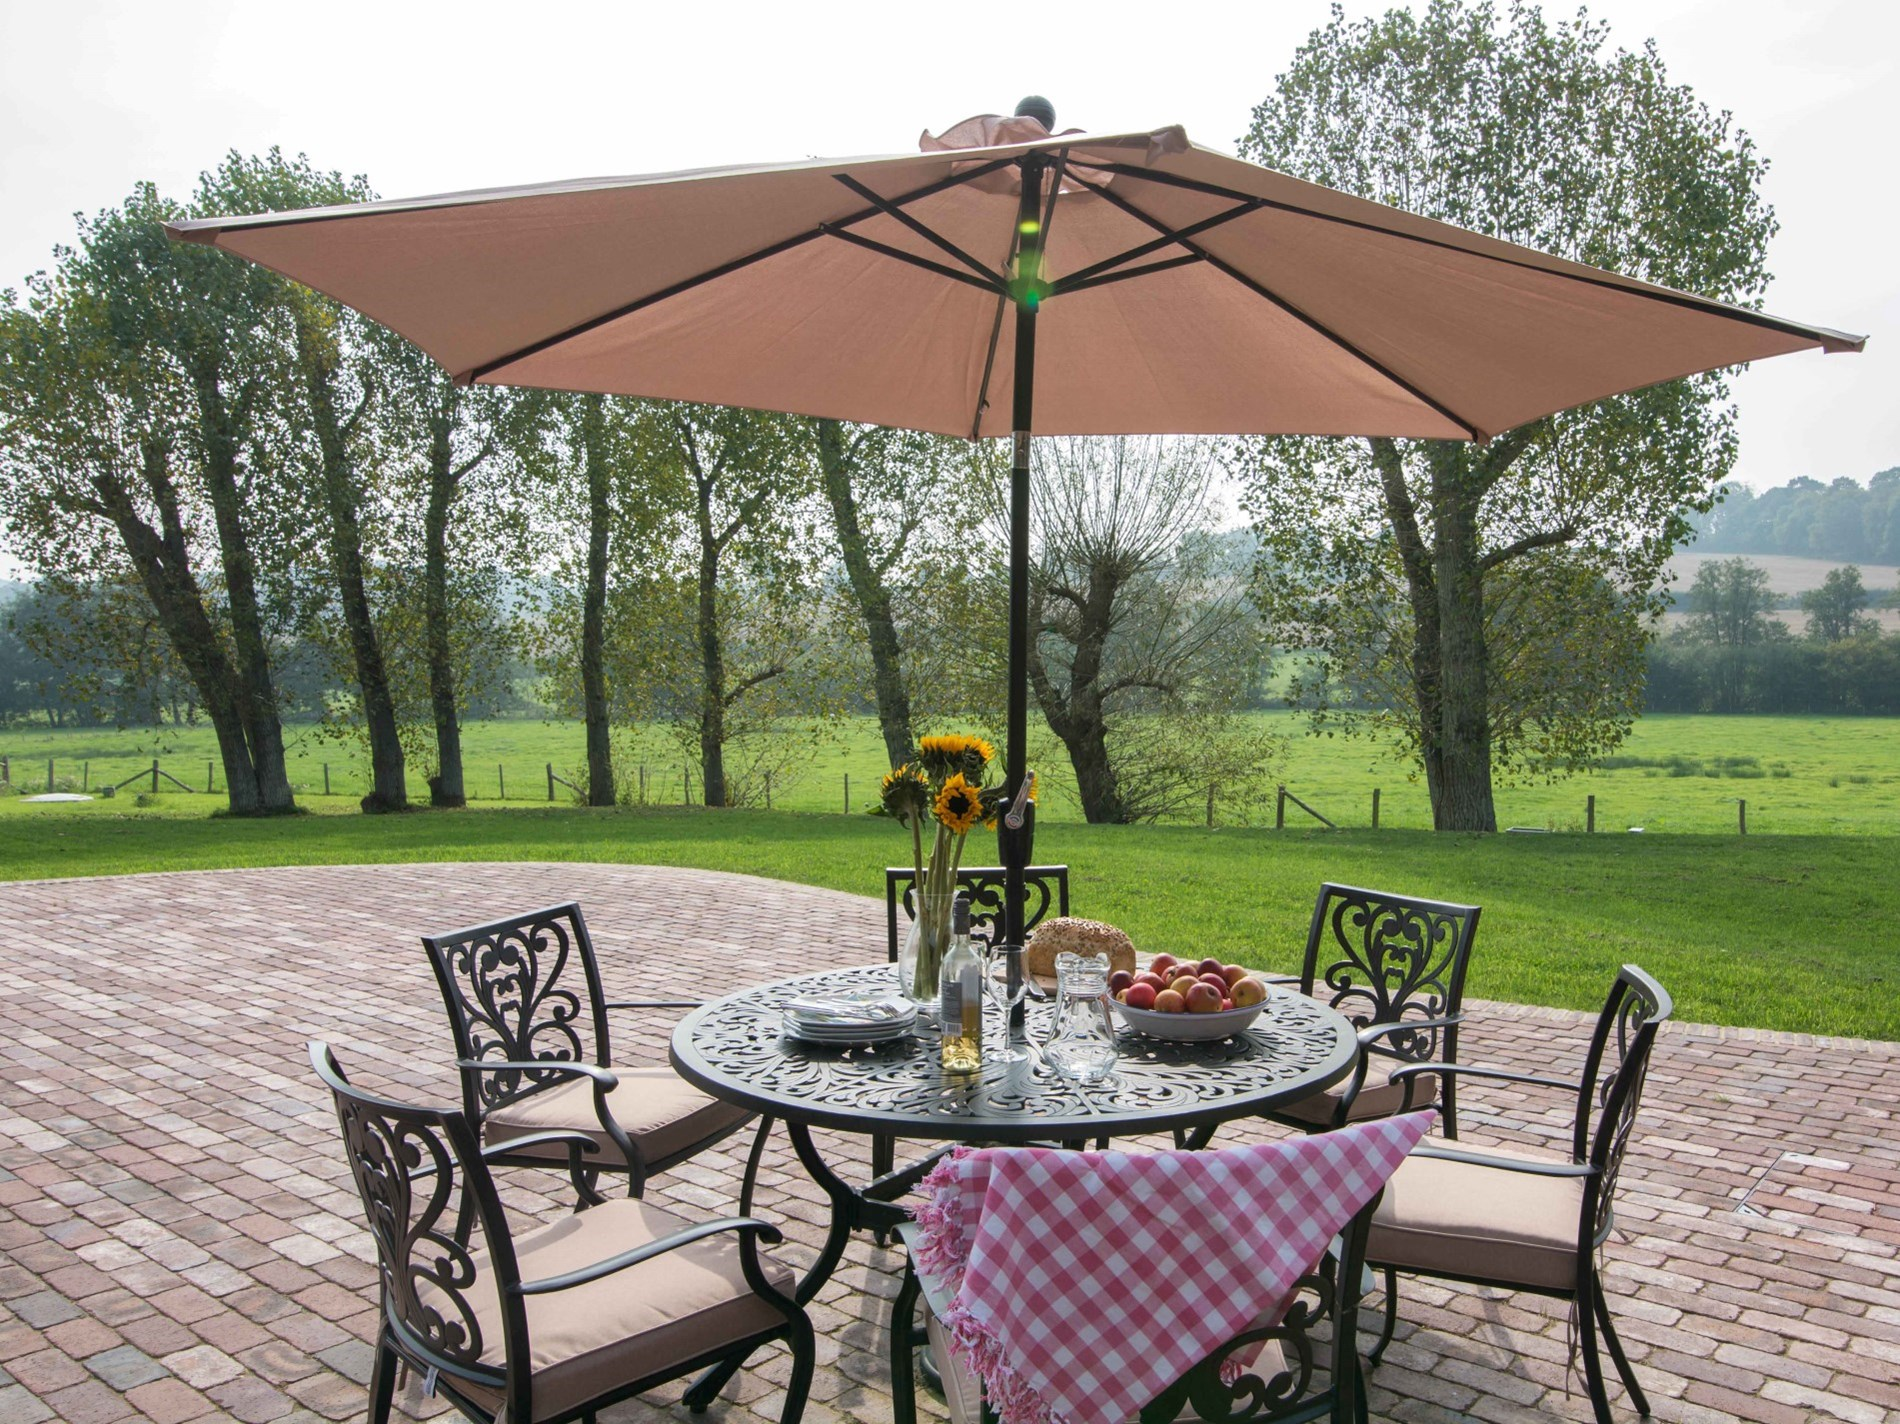 Al fresco dining with a view